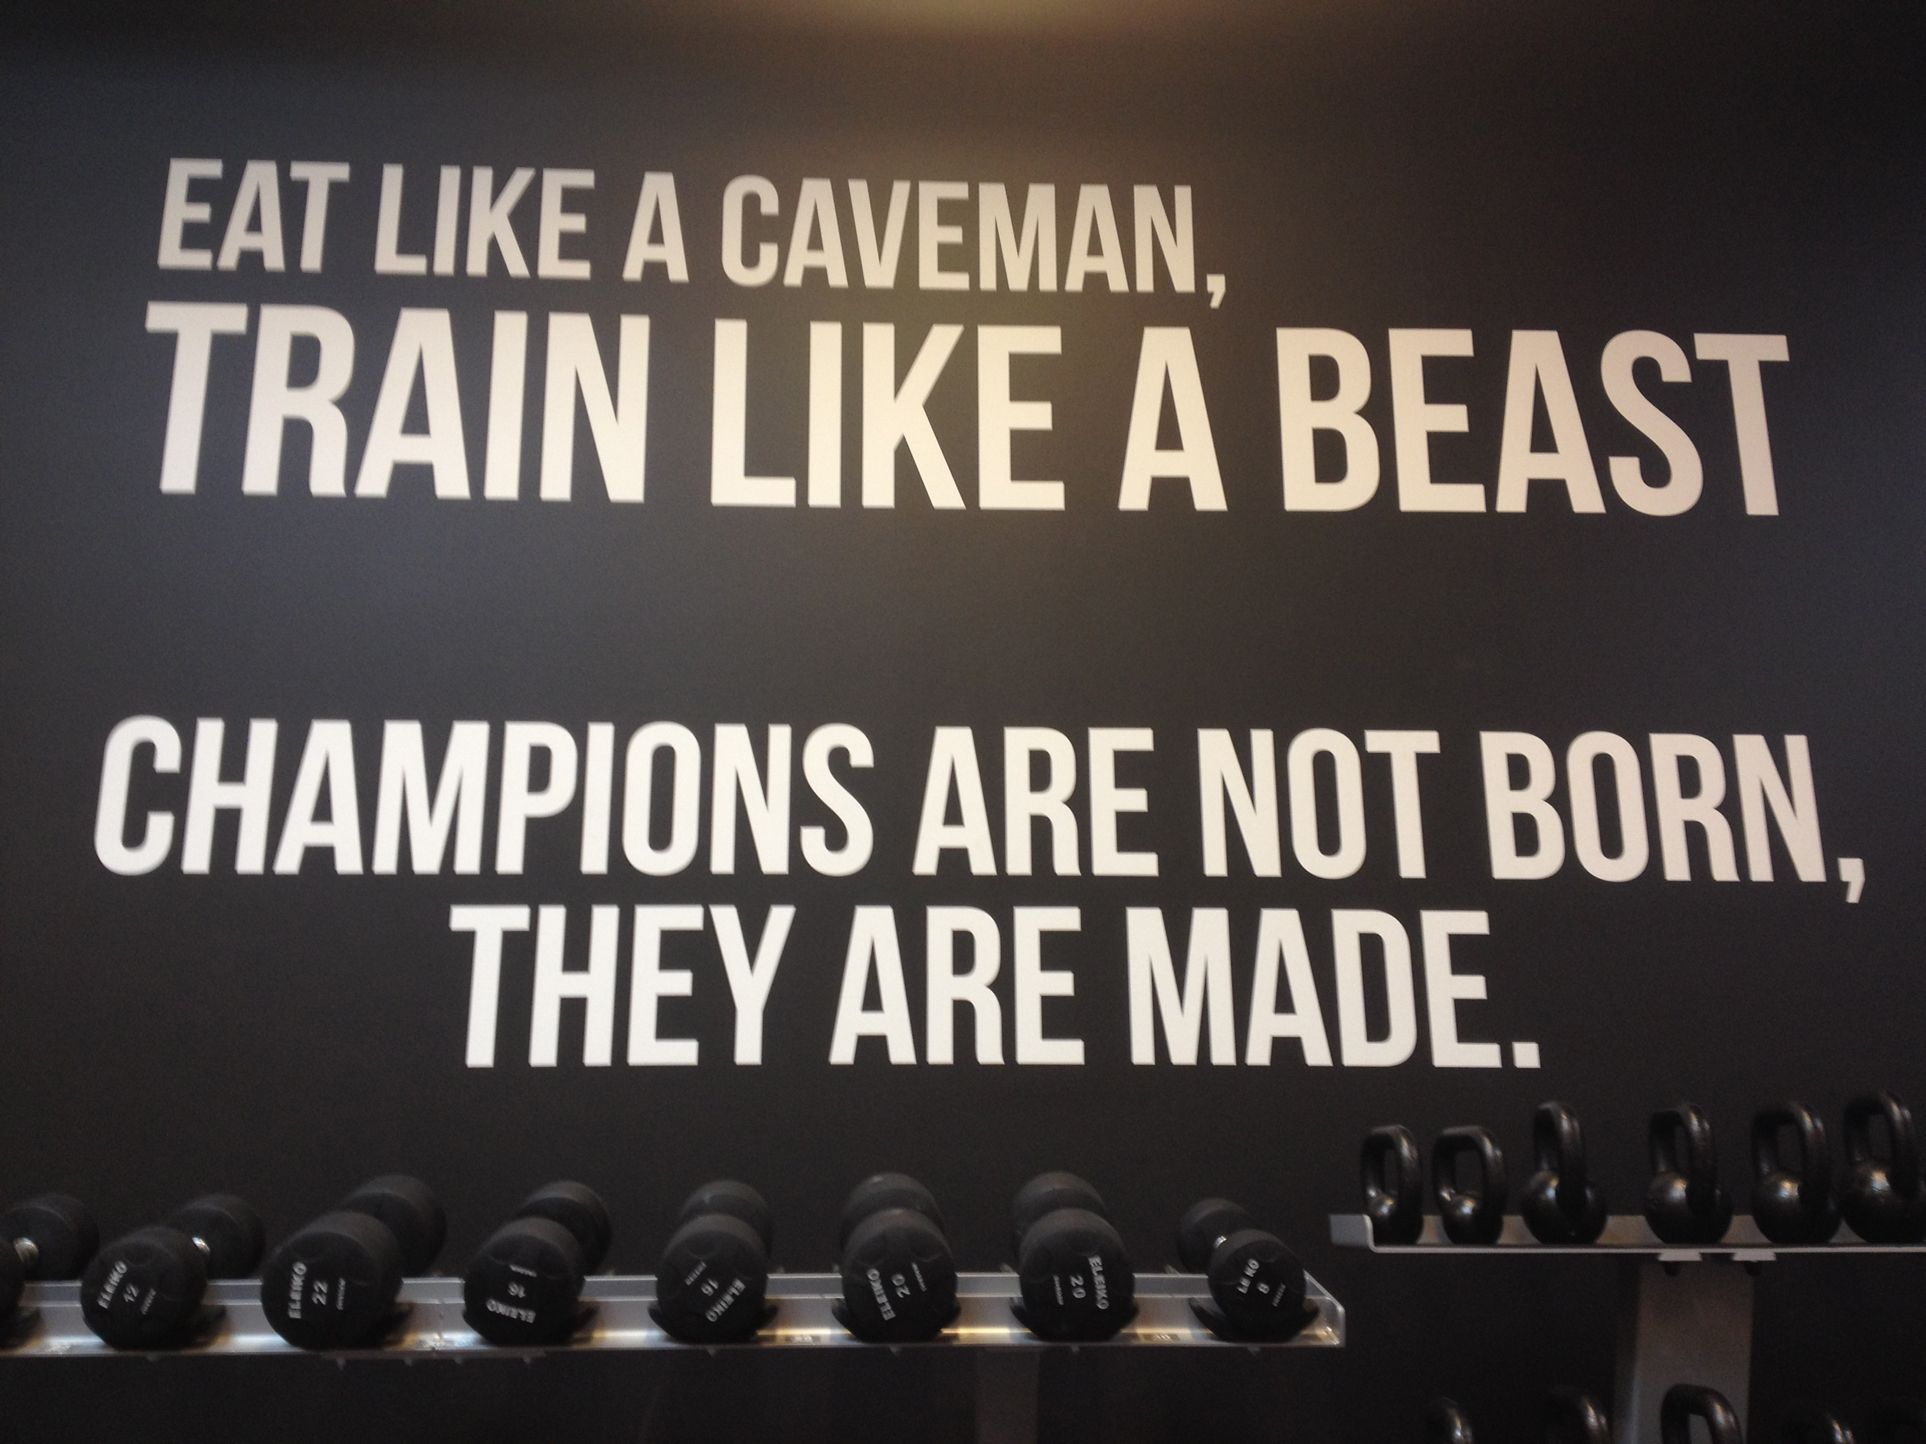 Crossfit Quotes Crossfit  Bing Images  Crossfit Obsessed  Pinterest  Crossfit